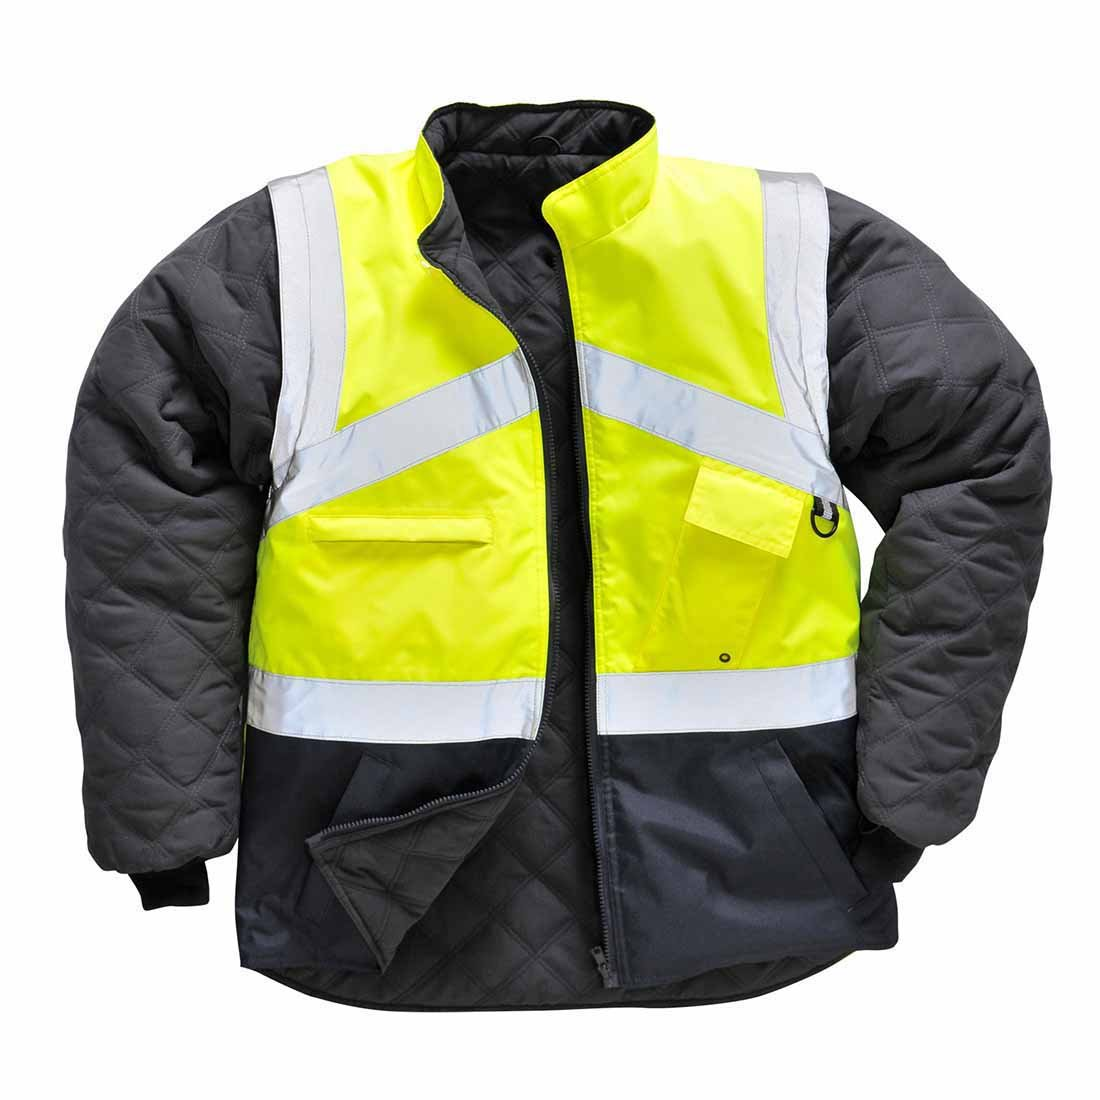 Portwest S769YNRXXXL Hi-Vis 2-Tone Jacket, 3X-Large, Yellow/Navy